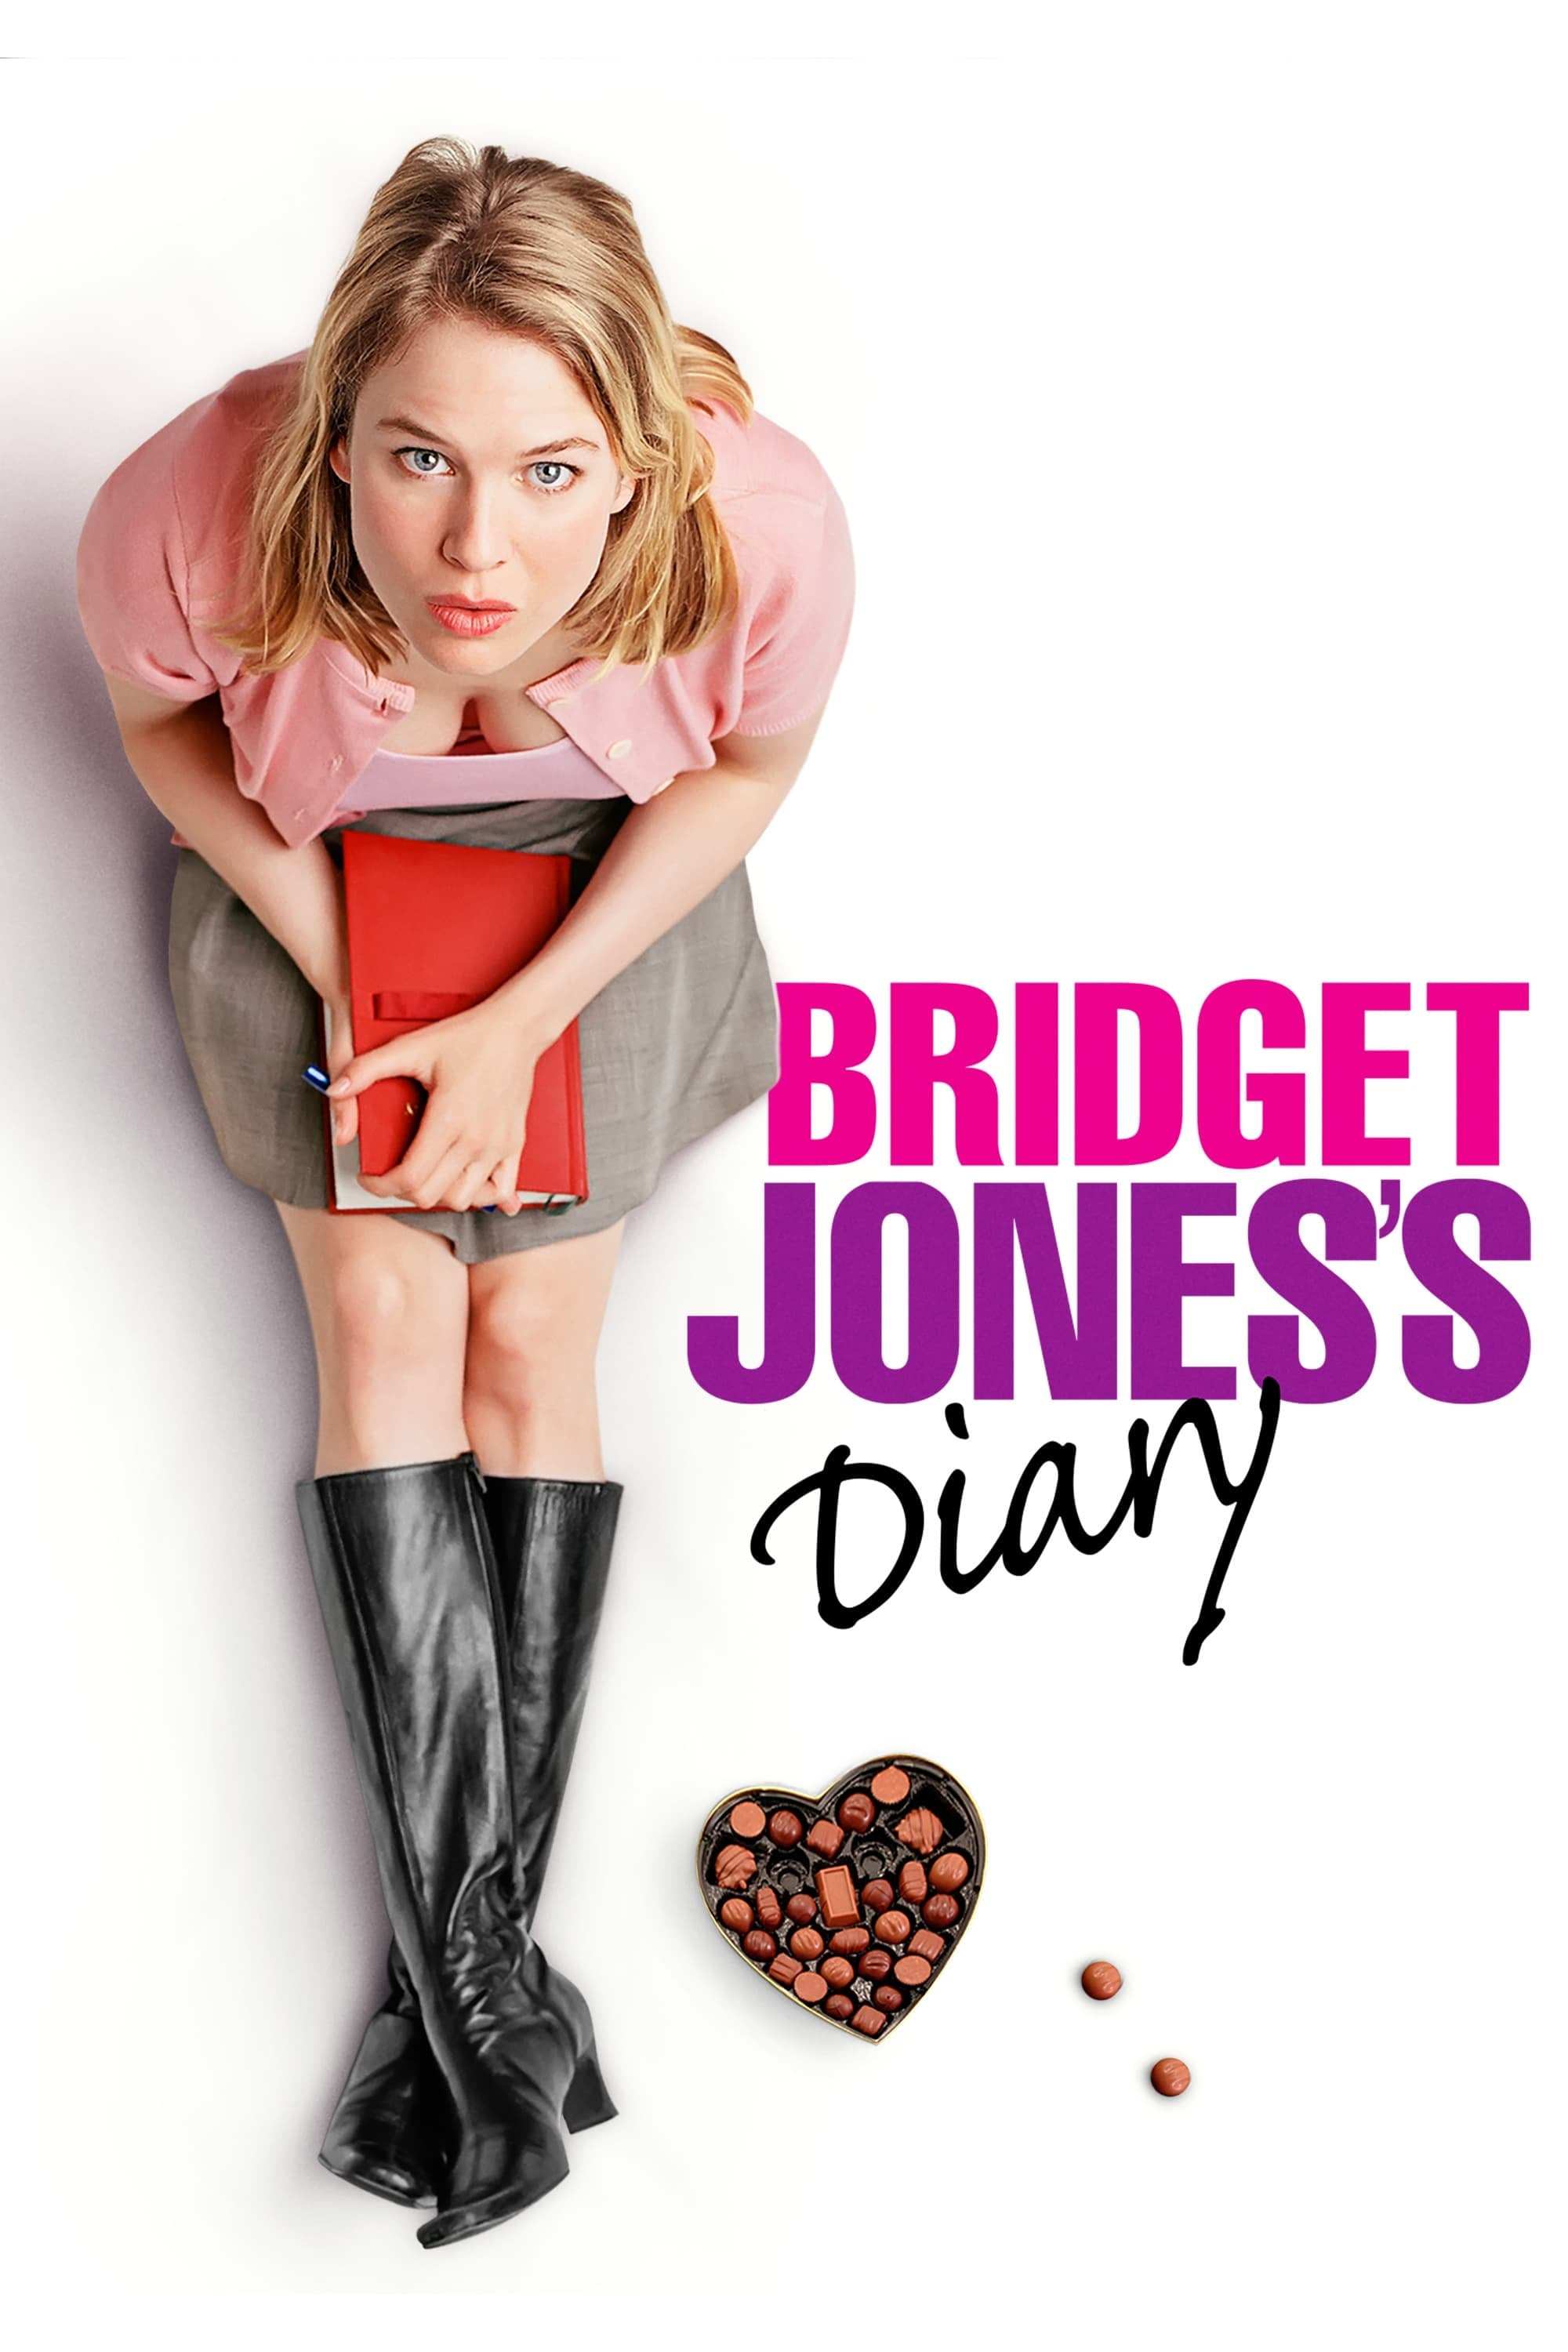 Image Bridget Jones's Diary